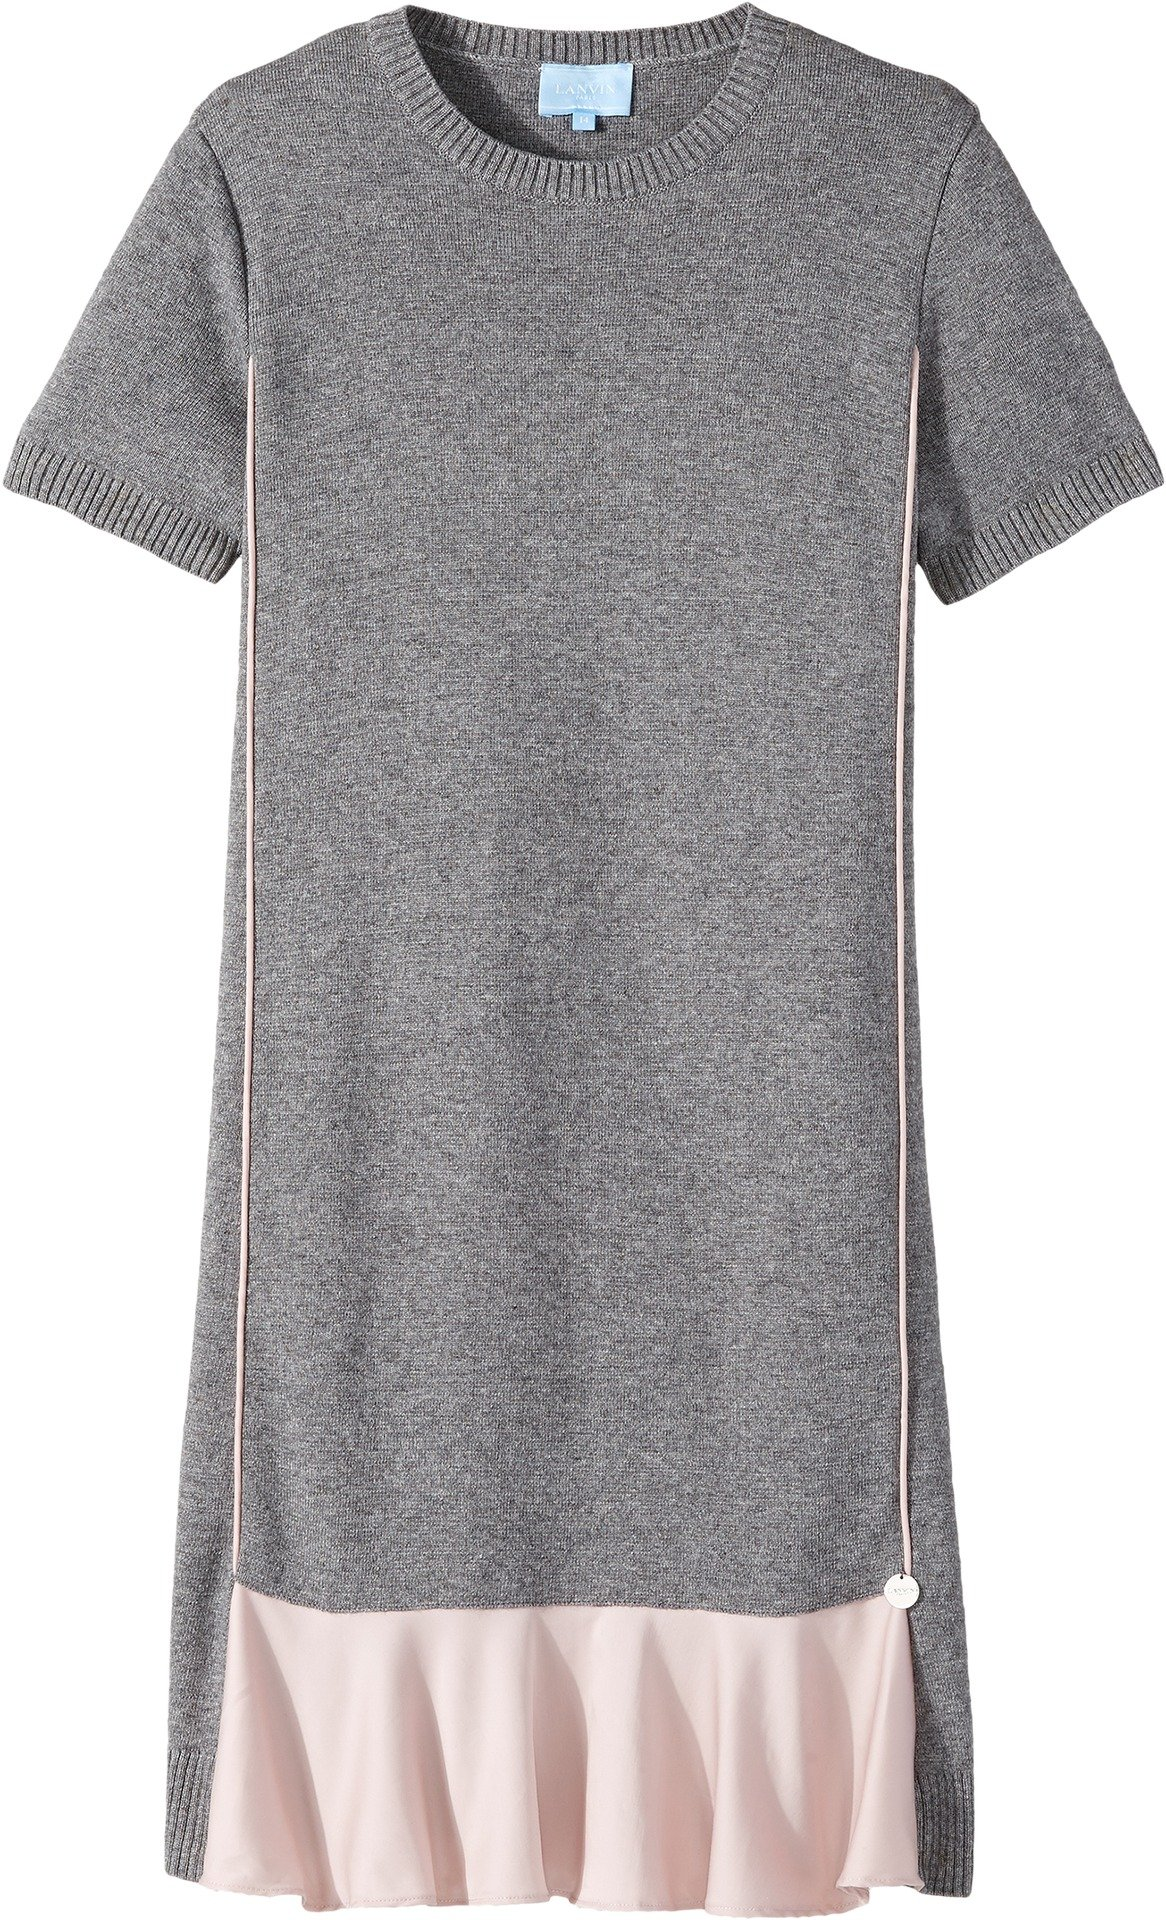 Lanvin Kids Girl's Short Sleeve Knit Dress with Contrast Ruffles On Front (Big Kids) Grey/Pink 14